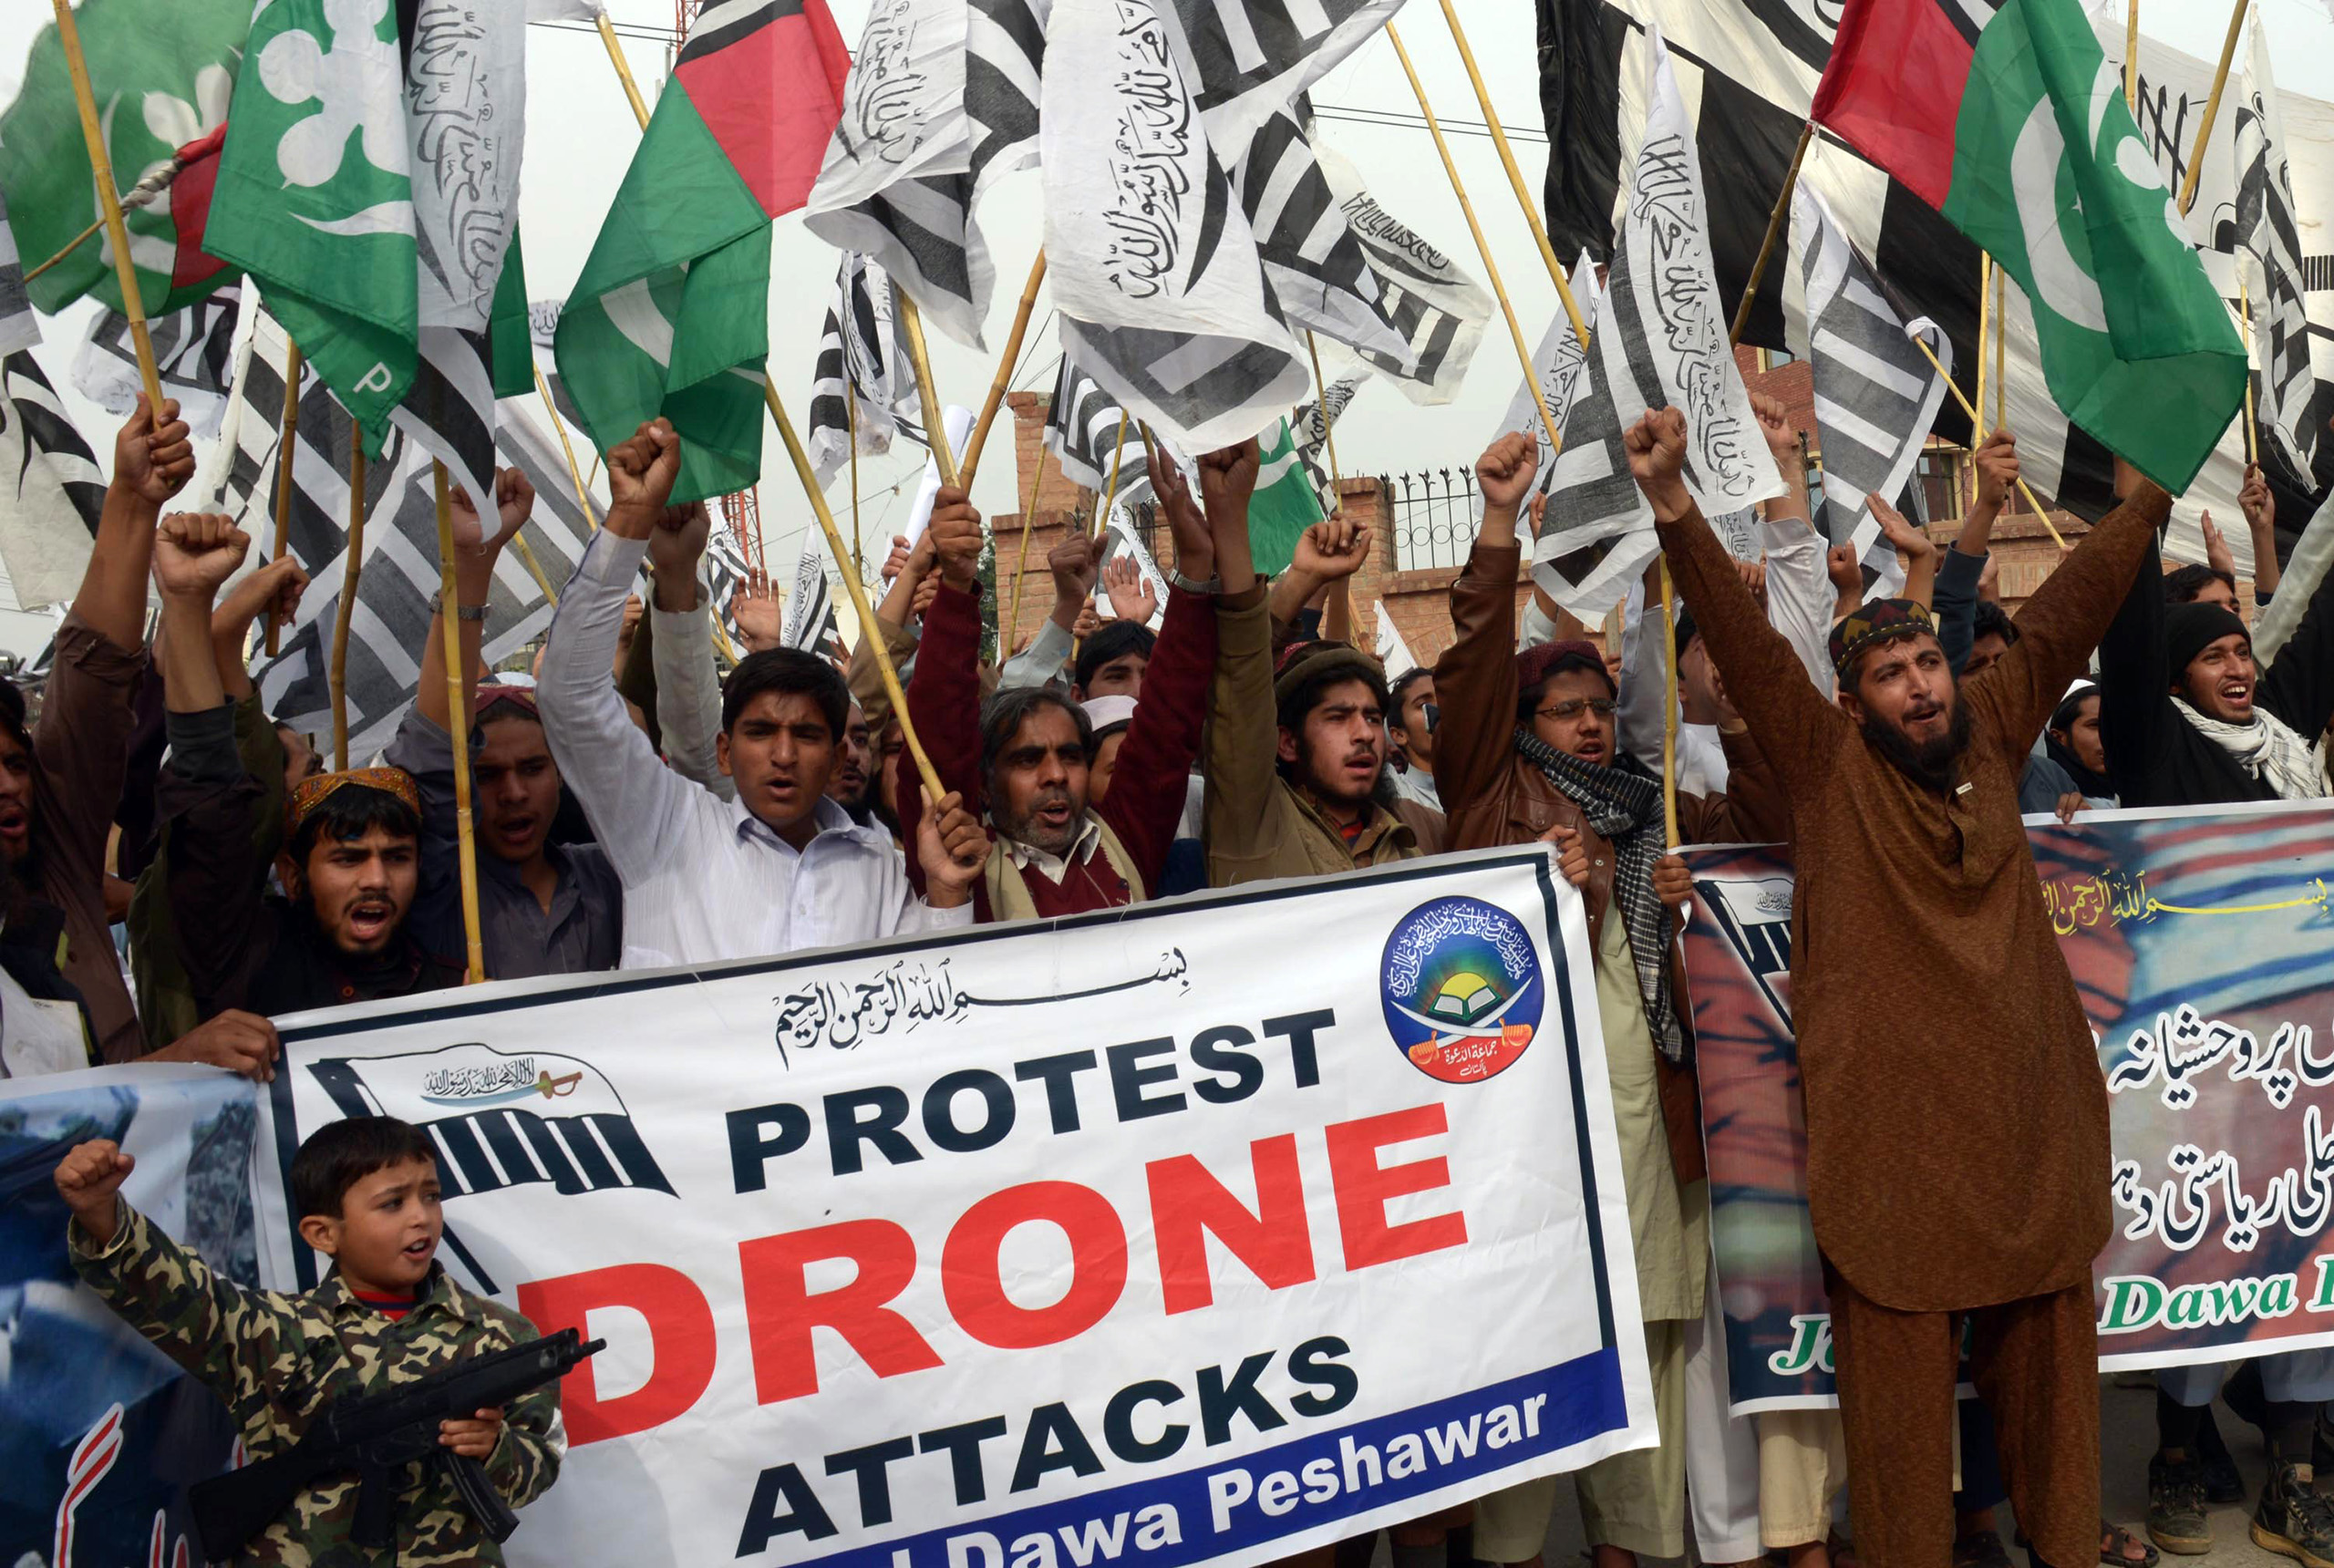 Supporters of Defense of Pakistan Council (DPC), a coalition of religious and political parties, protest against the US drone strikes in the Pakistani tribal region, in Peshawar on Nov. 10, 2013.